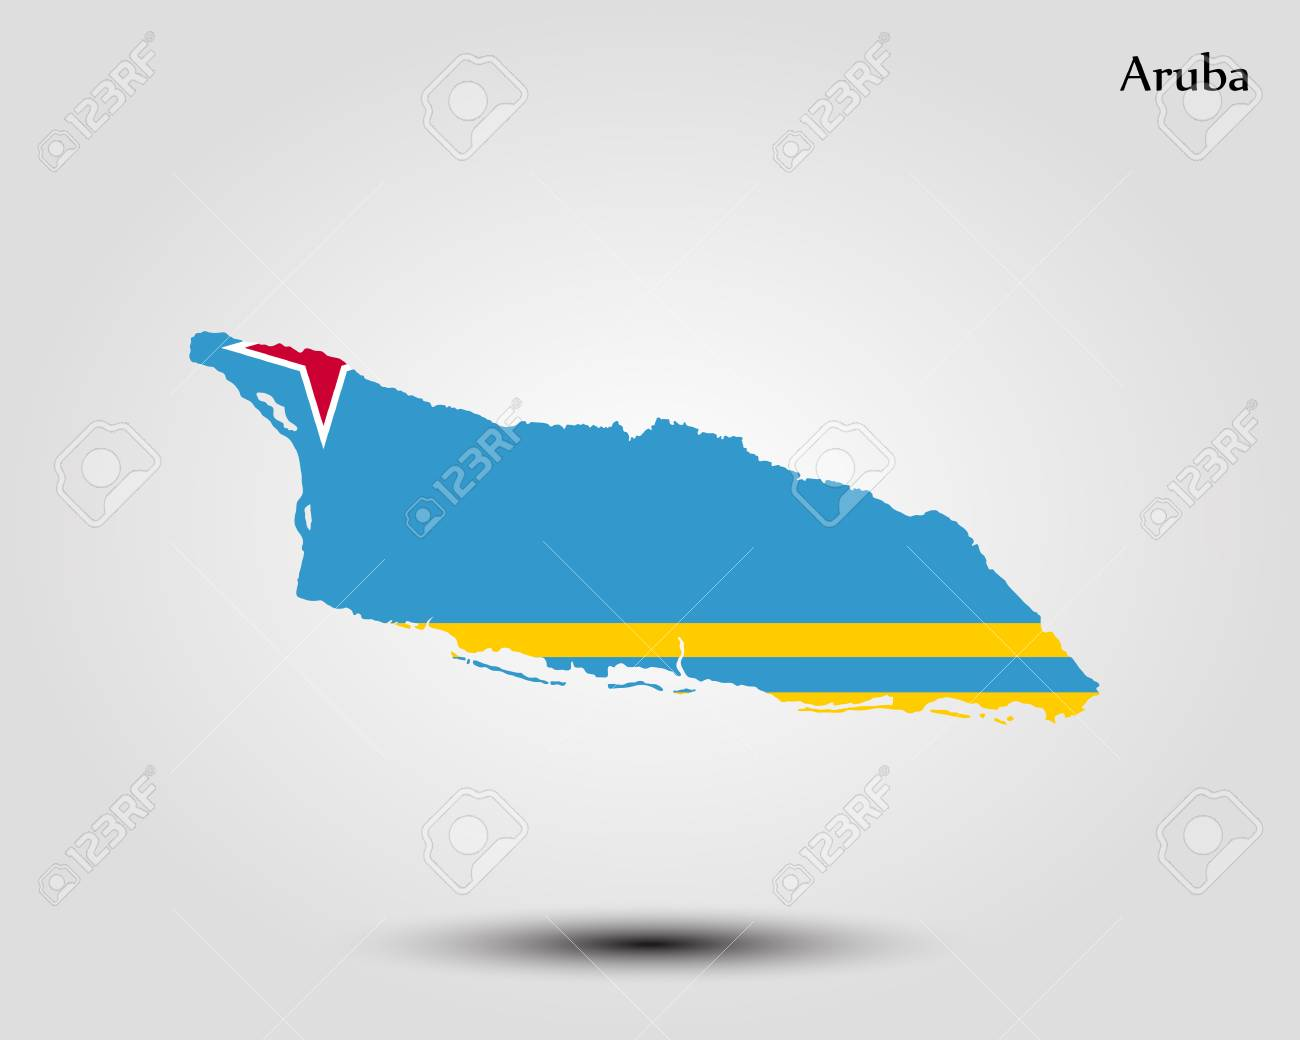 Map of Aruba. Vector illustration. World map